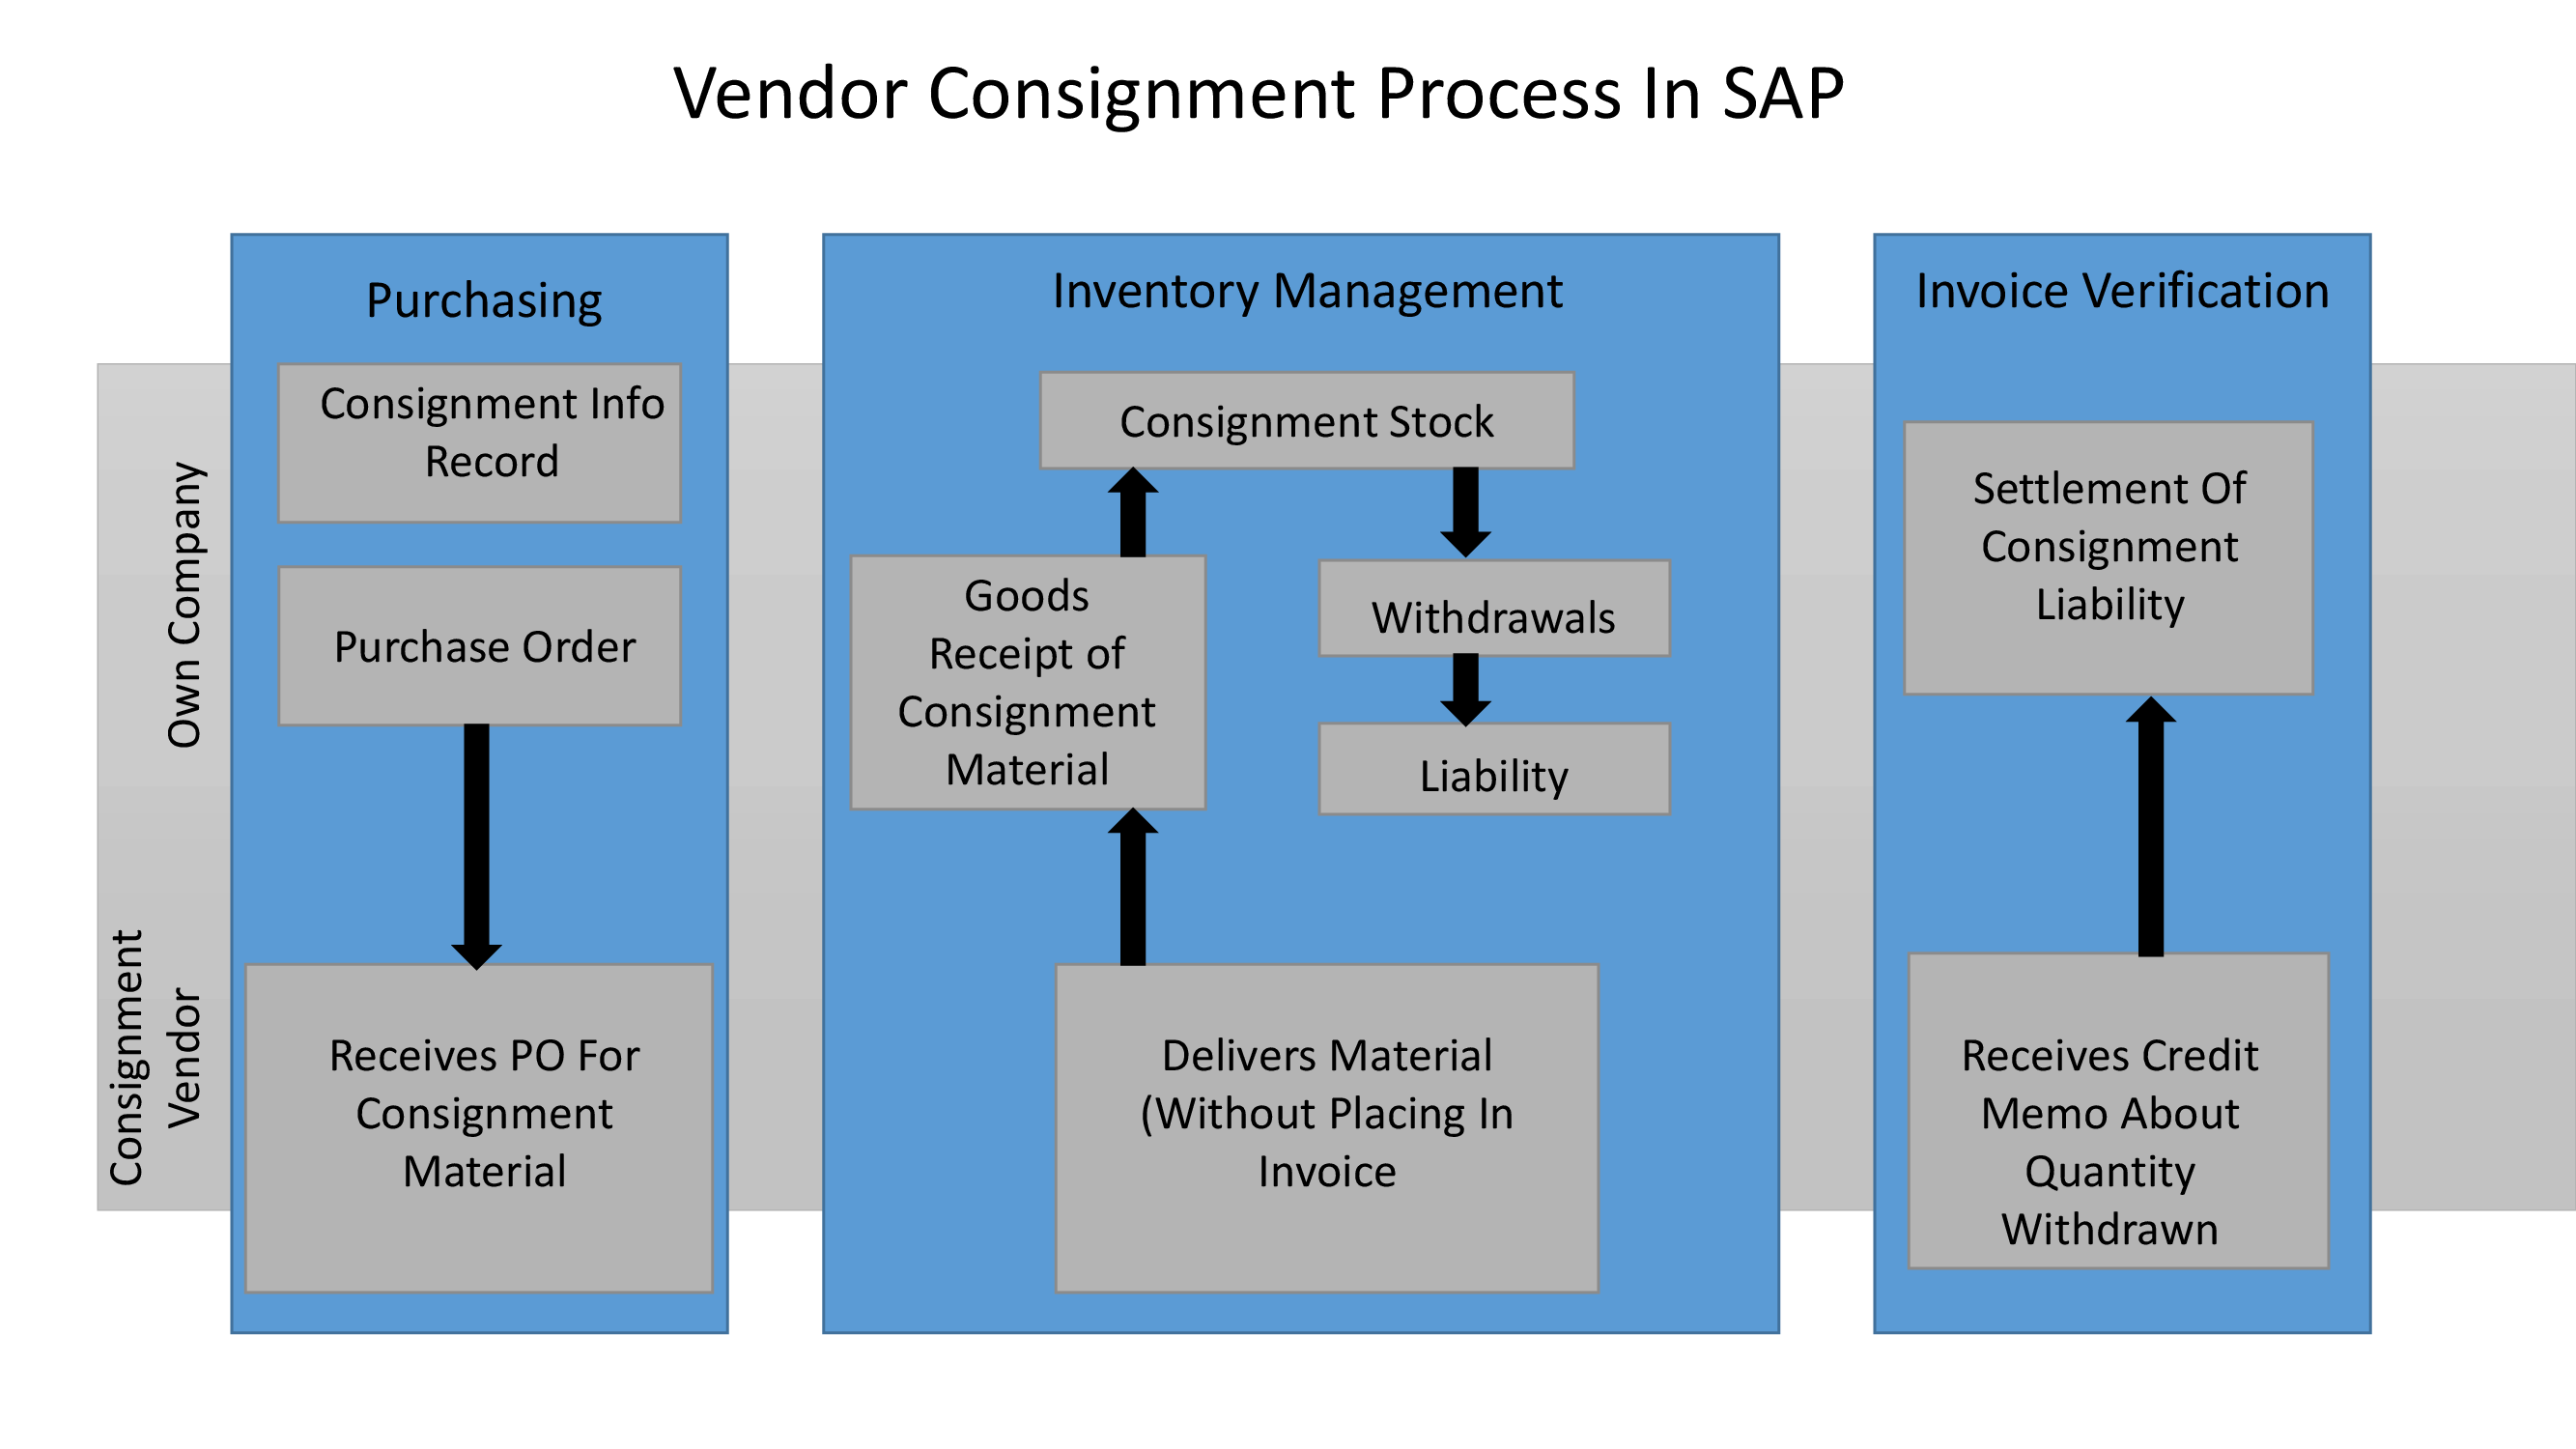 SAP MM VENDOR CONSIGNMENT PROCUREMENT PROCESS